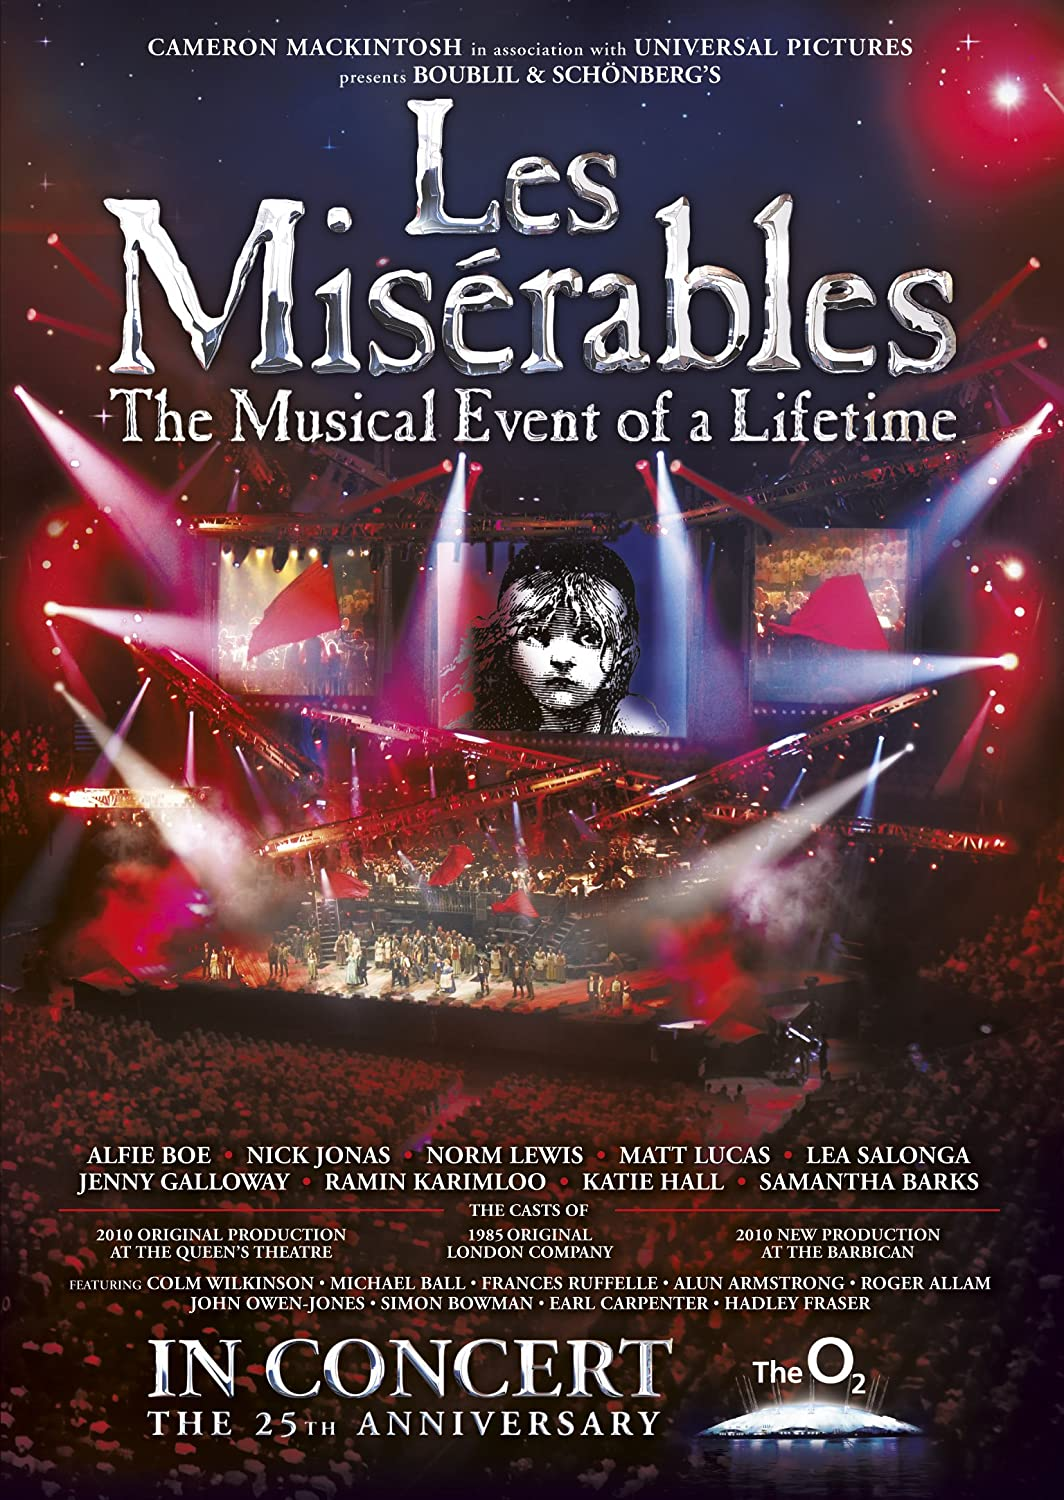 les miserables the th anniversary in concert at the o dvd  les miserables the 25th anniversary in concert at the o2 dvd amazon co uk alfie boe nick jonas norm lewis matt lucas colm wilkinson michael ball